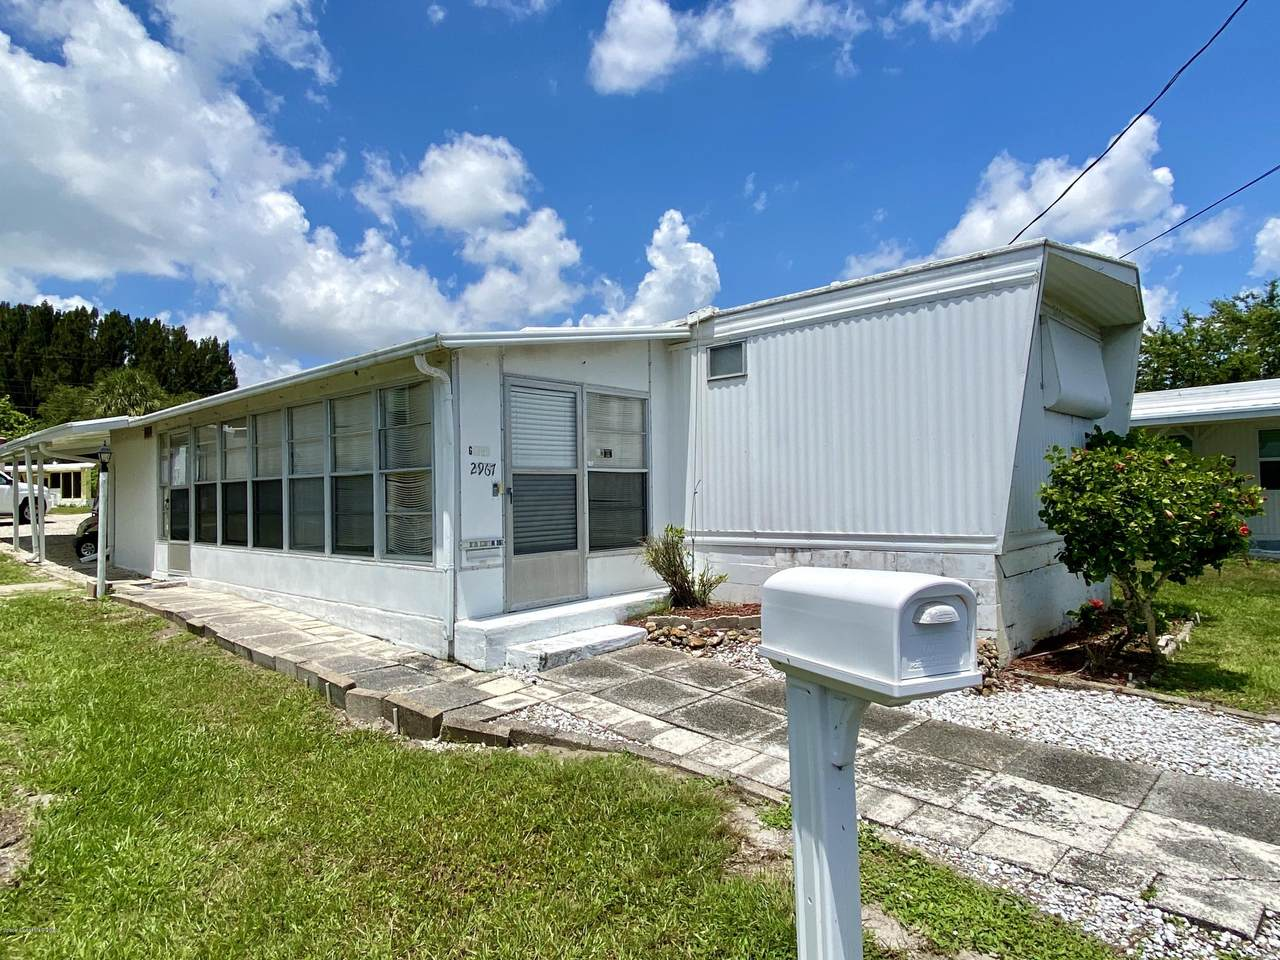 2967 Indian River Drive - Photo 1